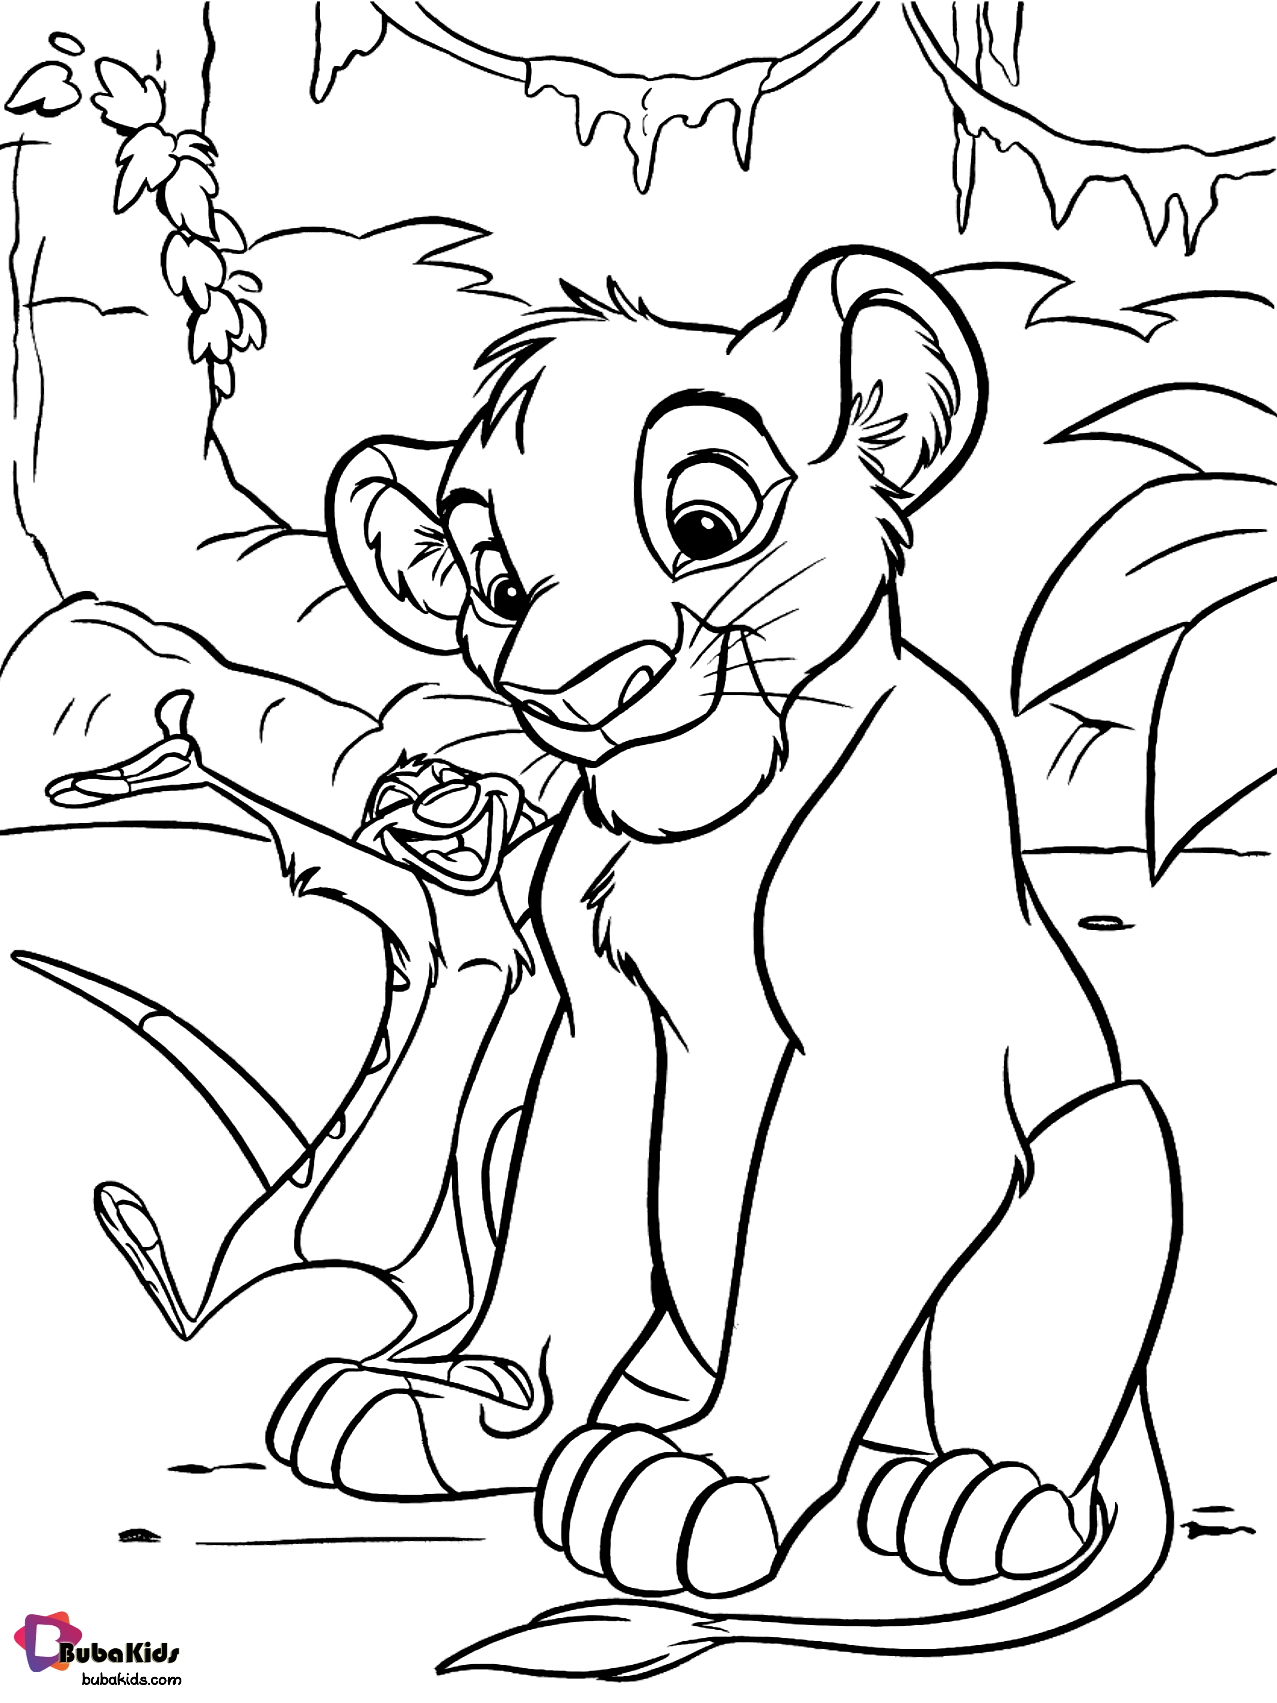 Simba The Lion King Coloring Page Collection Of Cartoon Coloring Pages For Teenage Printable That Lion Coloring Pages King Coloring Book Animal Coloring Pages